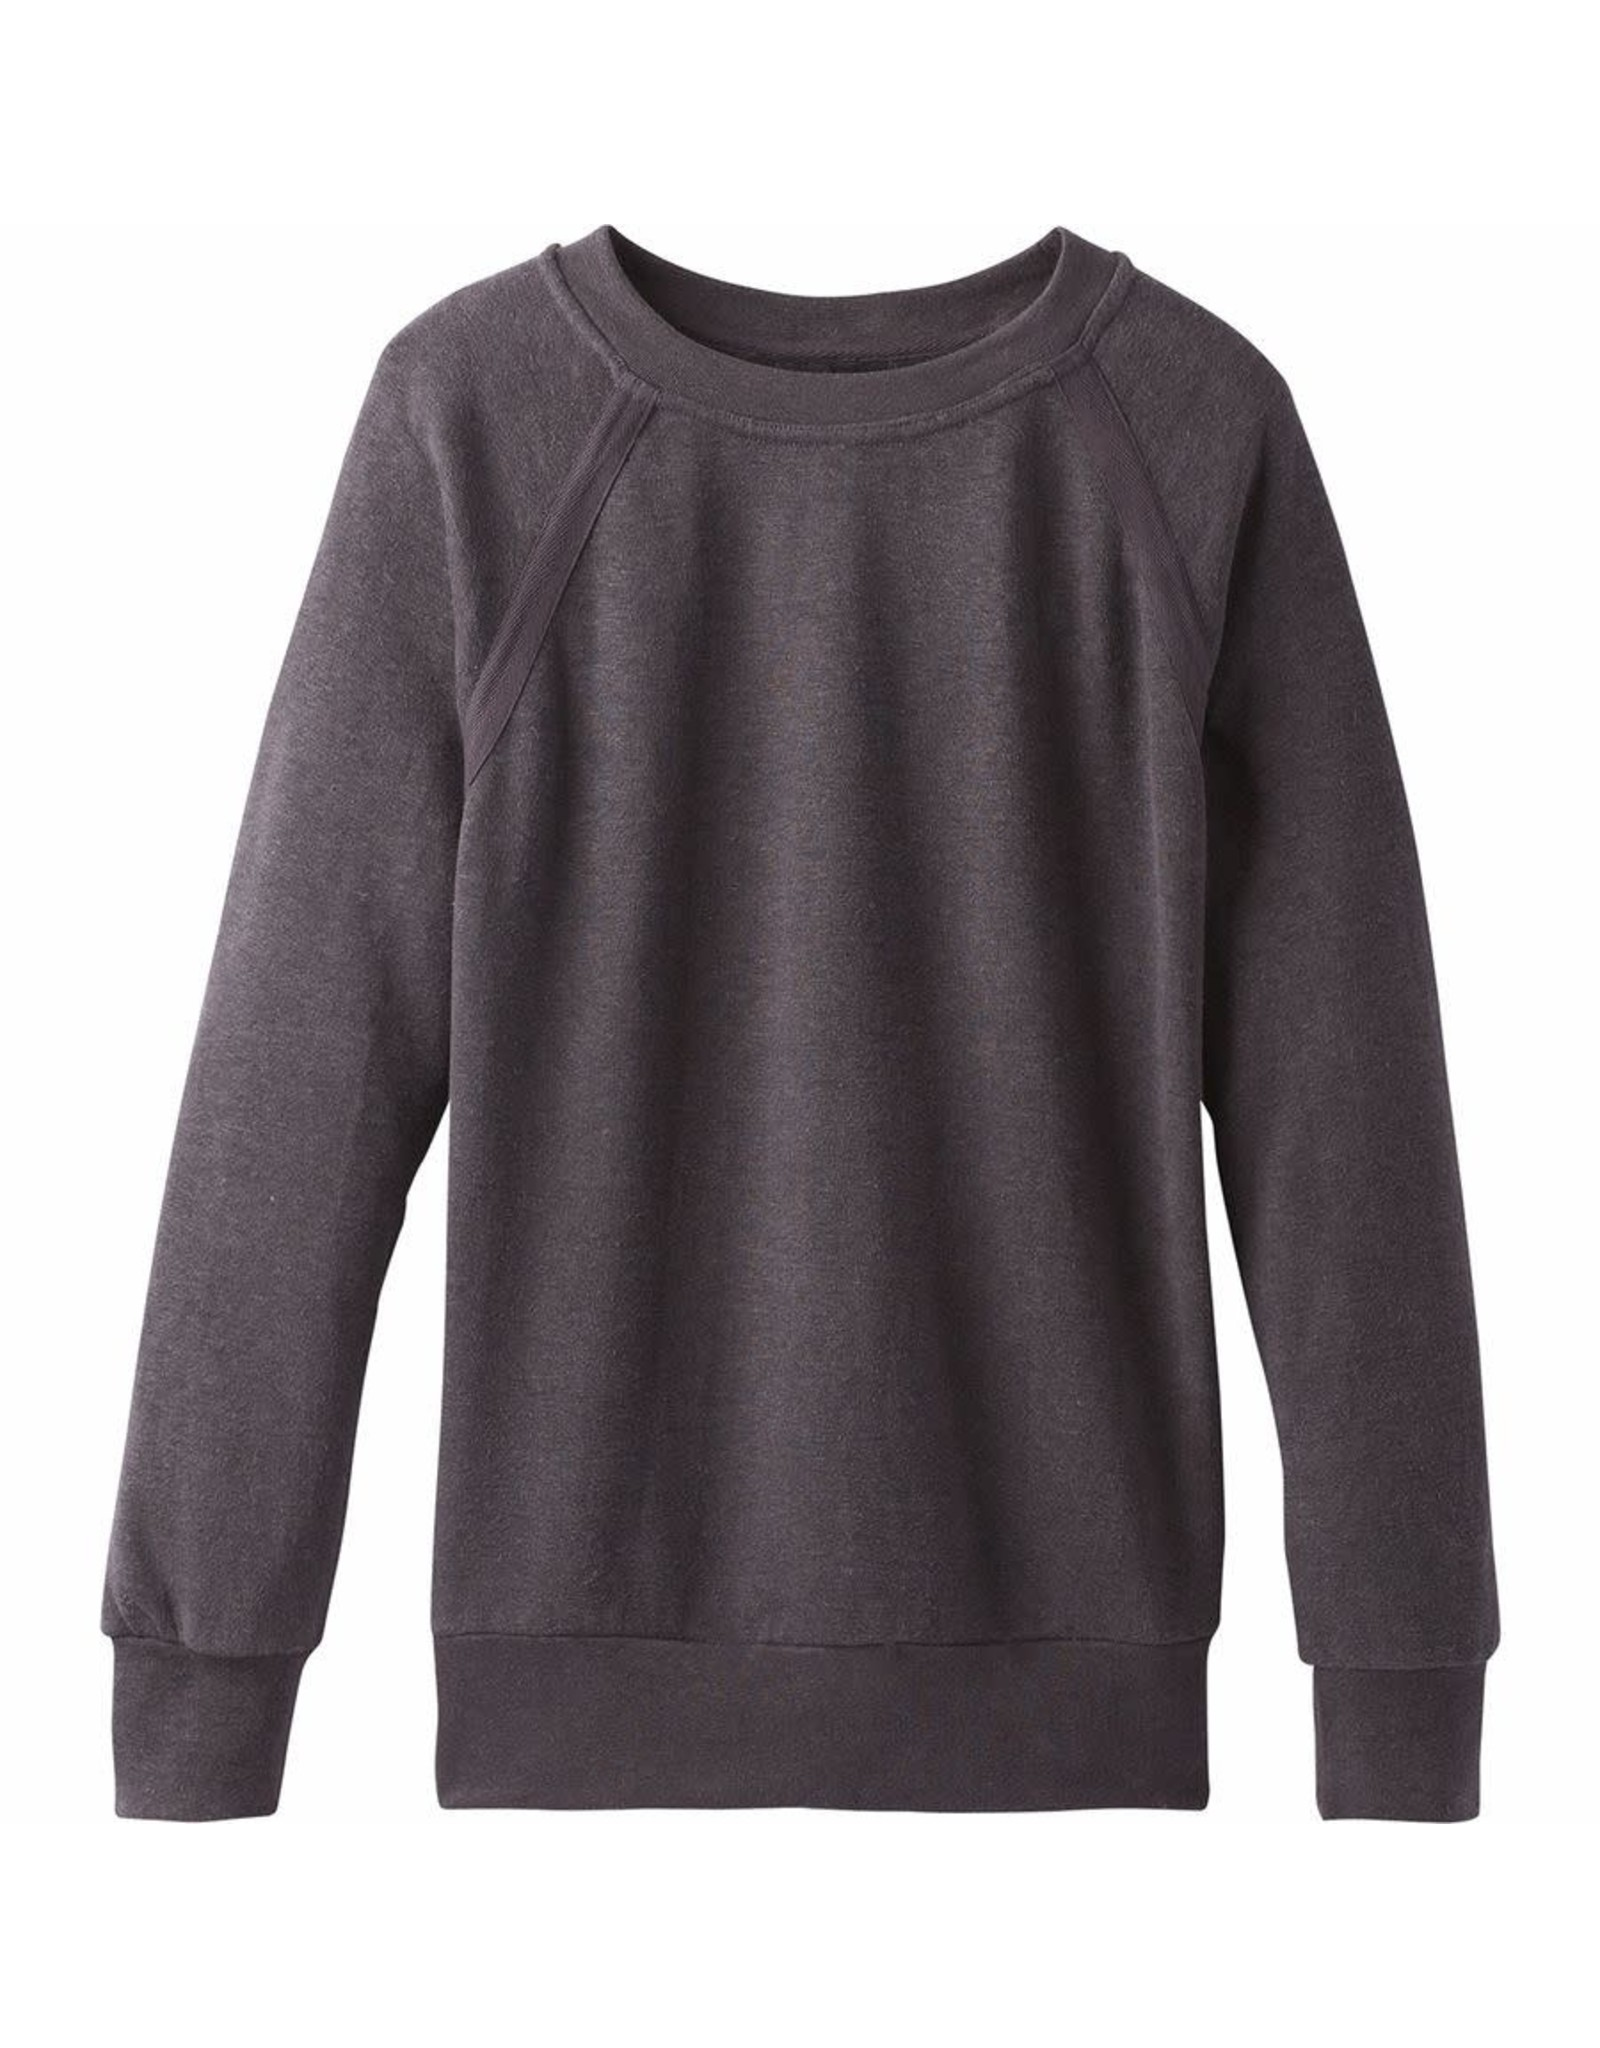 prAna Cozy Up Sweatshirt